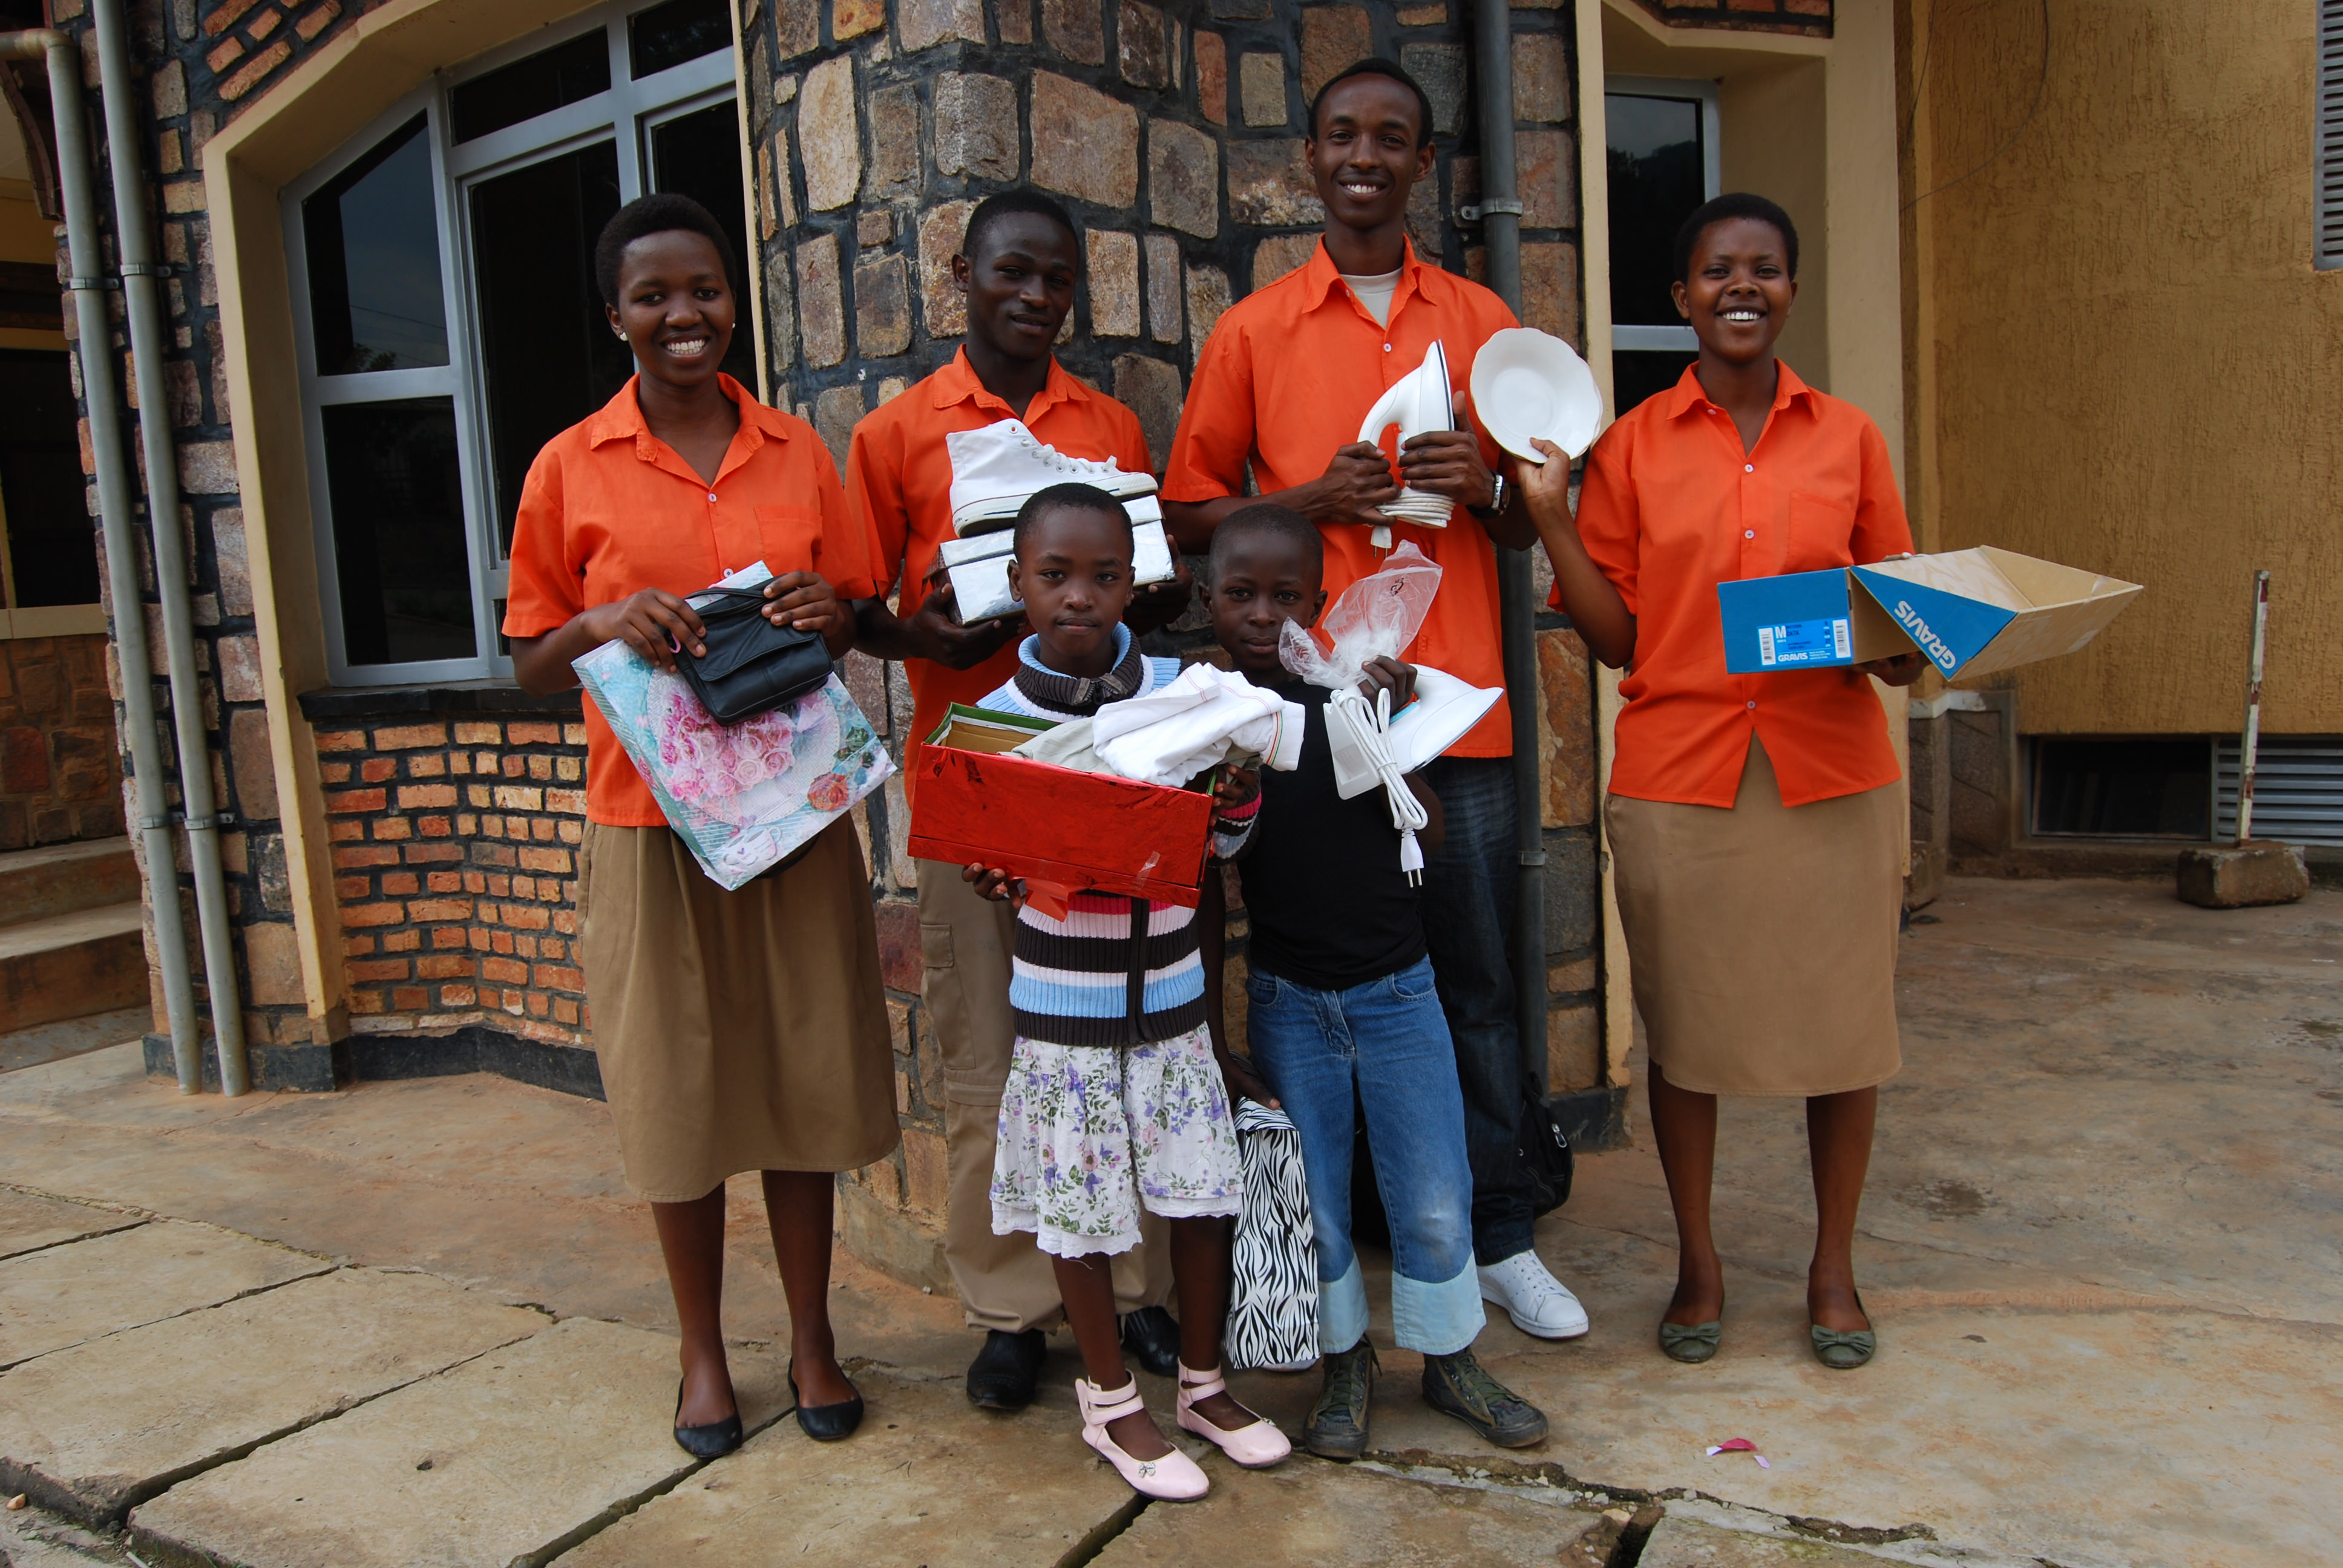 Teenagers in Rwanda with a variety of Christmas presents